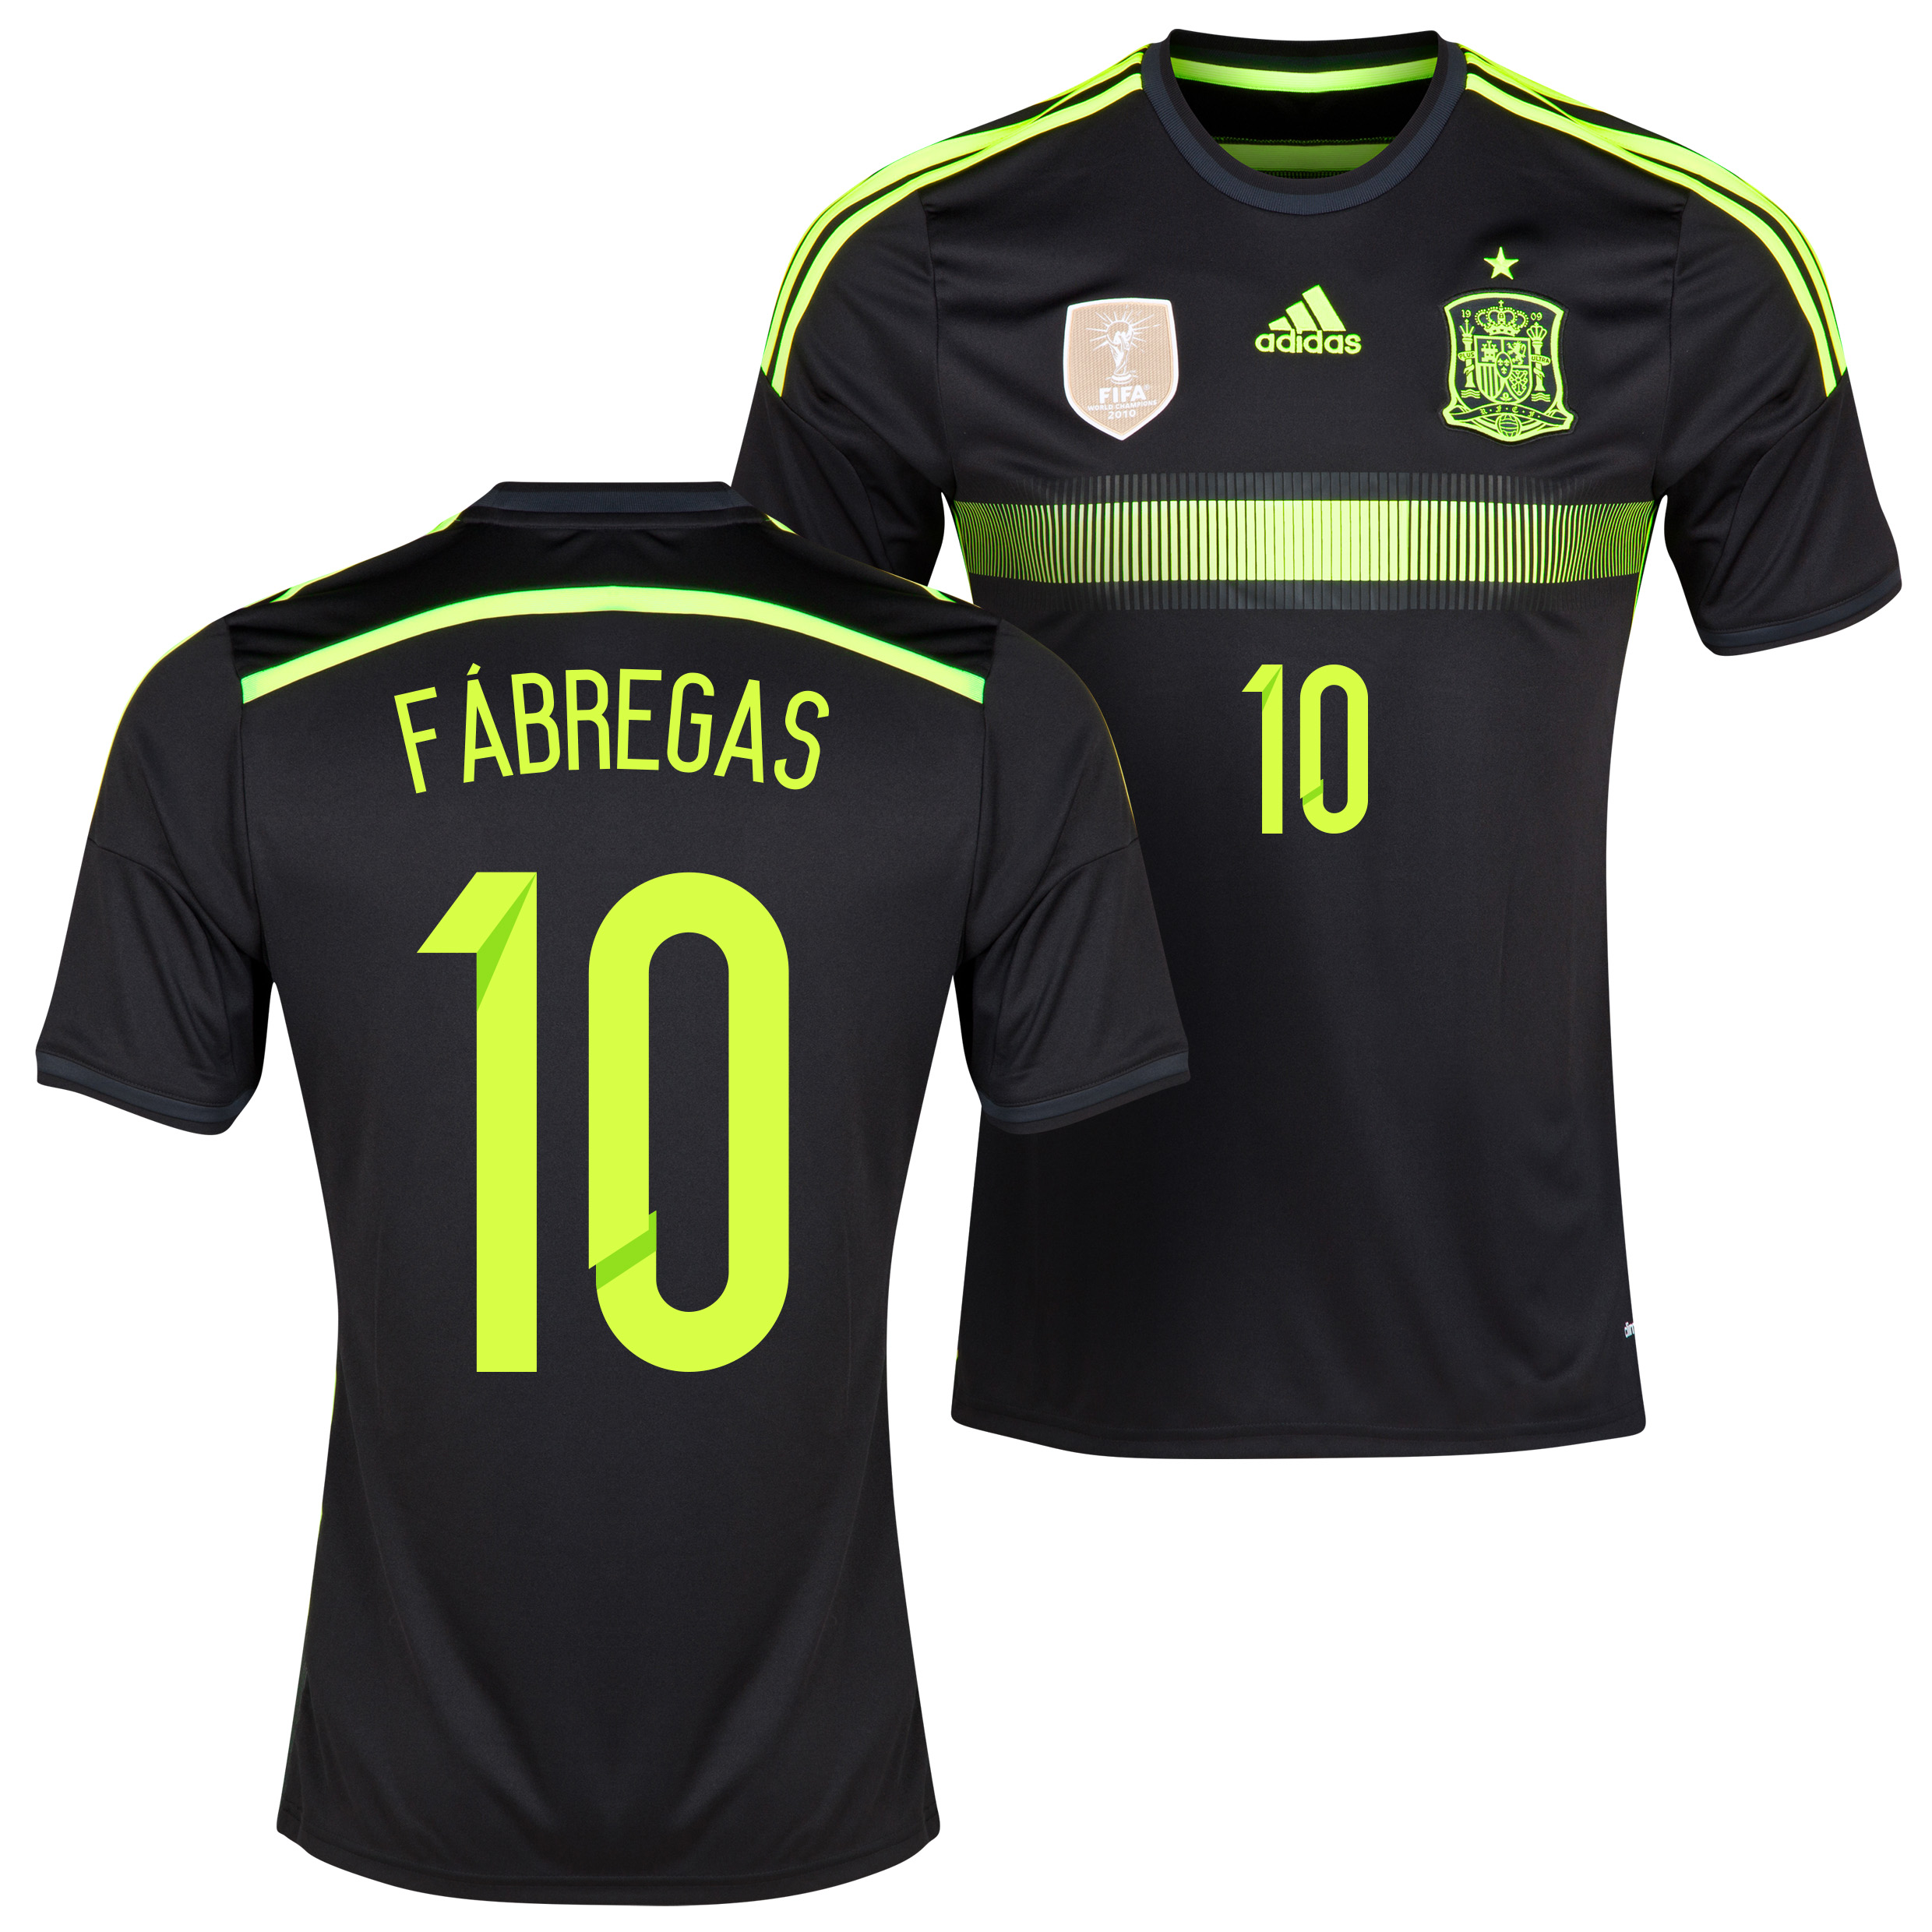 Spain Away Shirt 2013/15 with Fabregas 10 printing